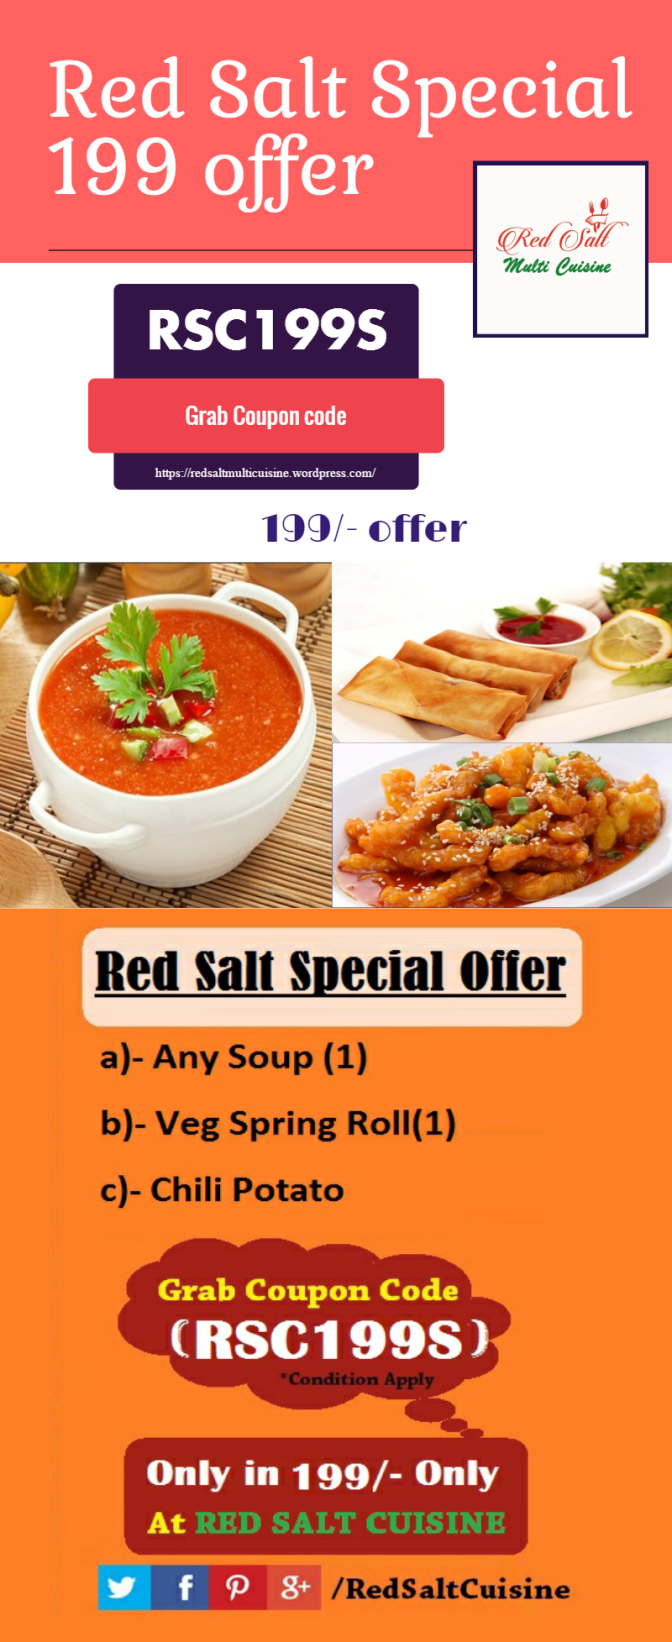 Red Salt Special Offer.png